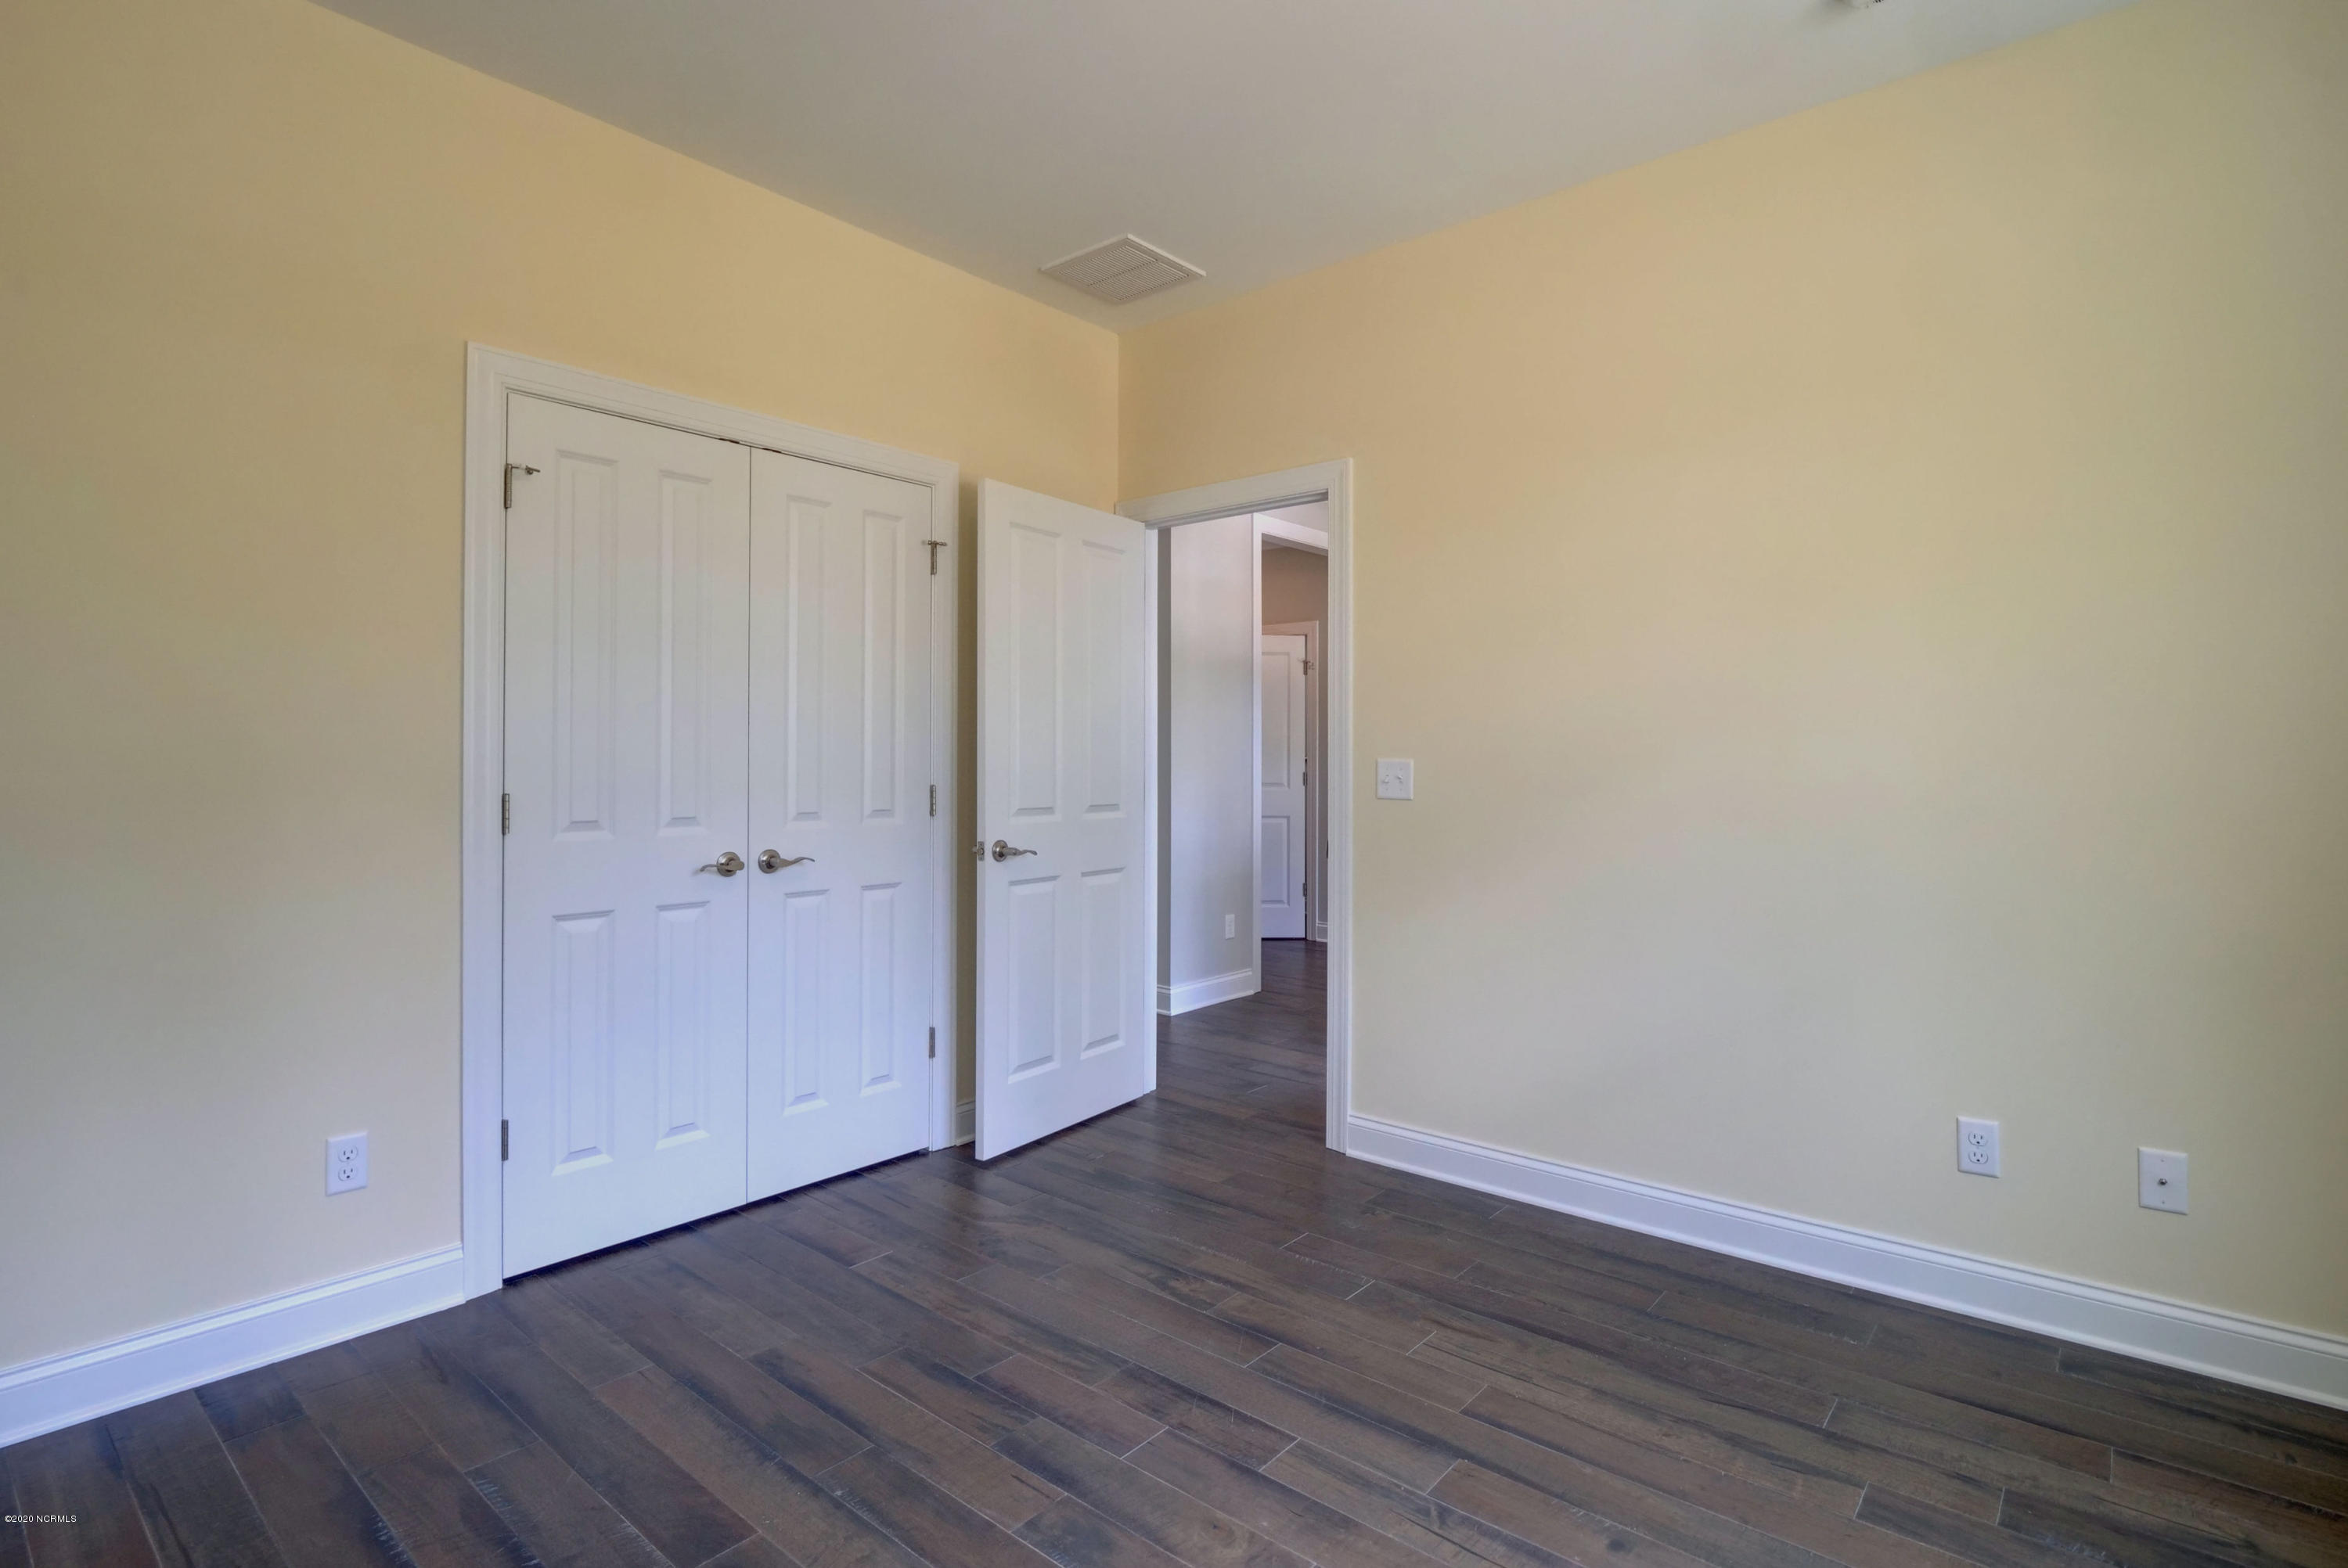 1454 Lone Pine Court, Bolivia, North Carolina 28422, 3 Bedrooms Bedrooms, 6 Rooms Rooms,2 BathroomsBathrooms,Single family residence,For sale,Lone Pine,100161336